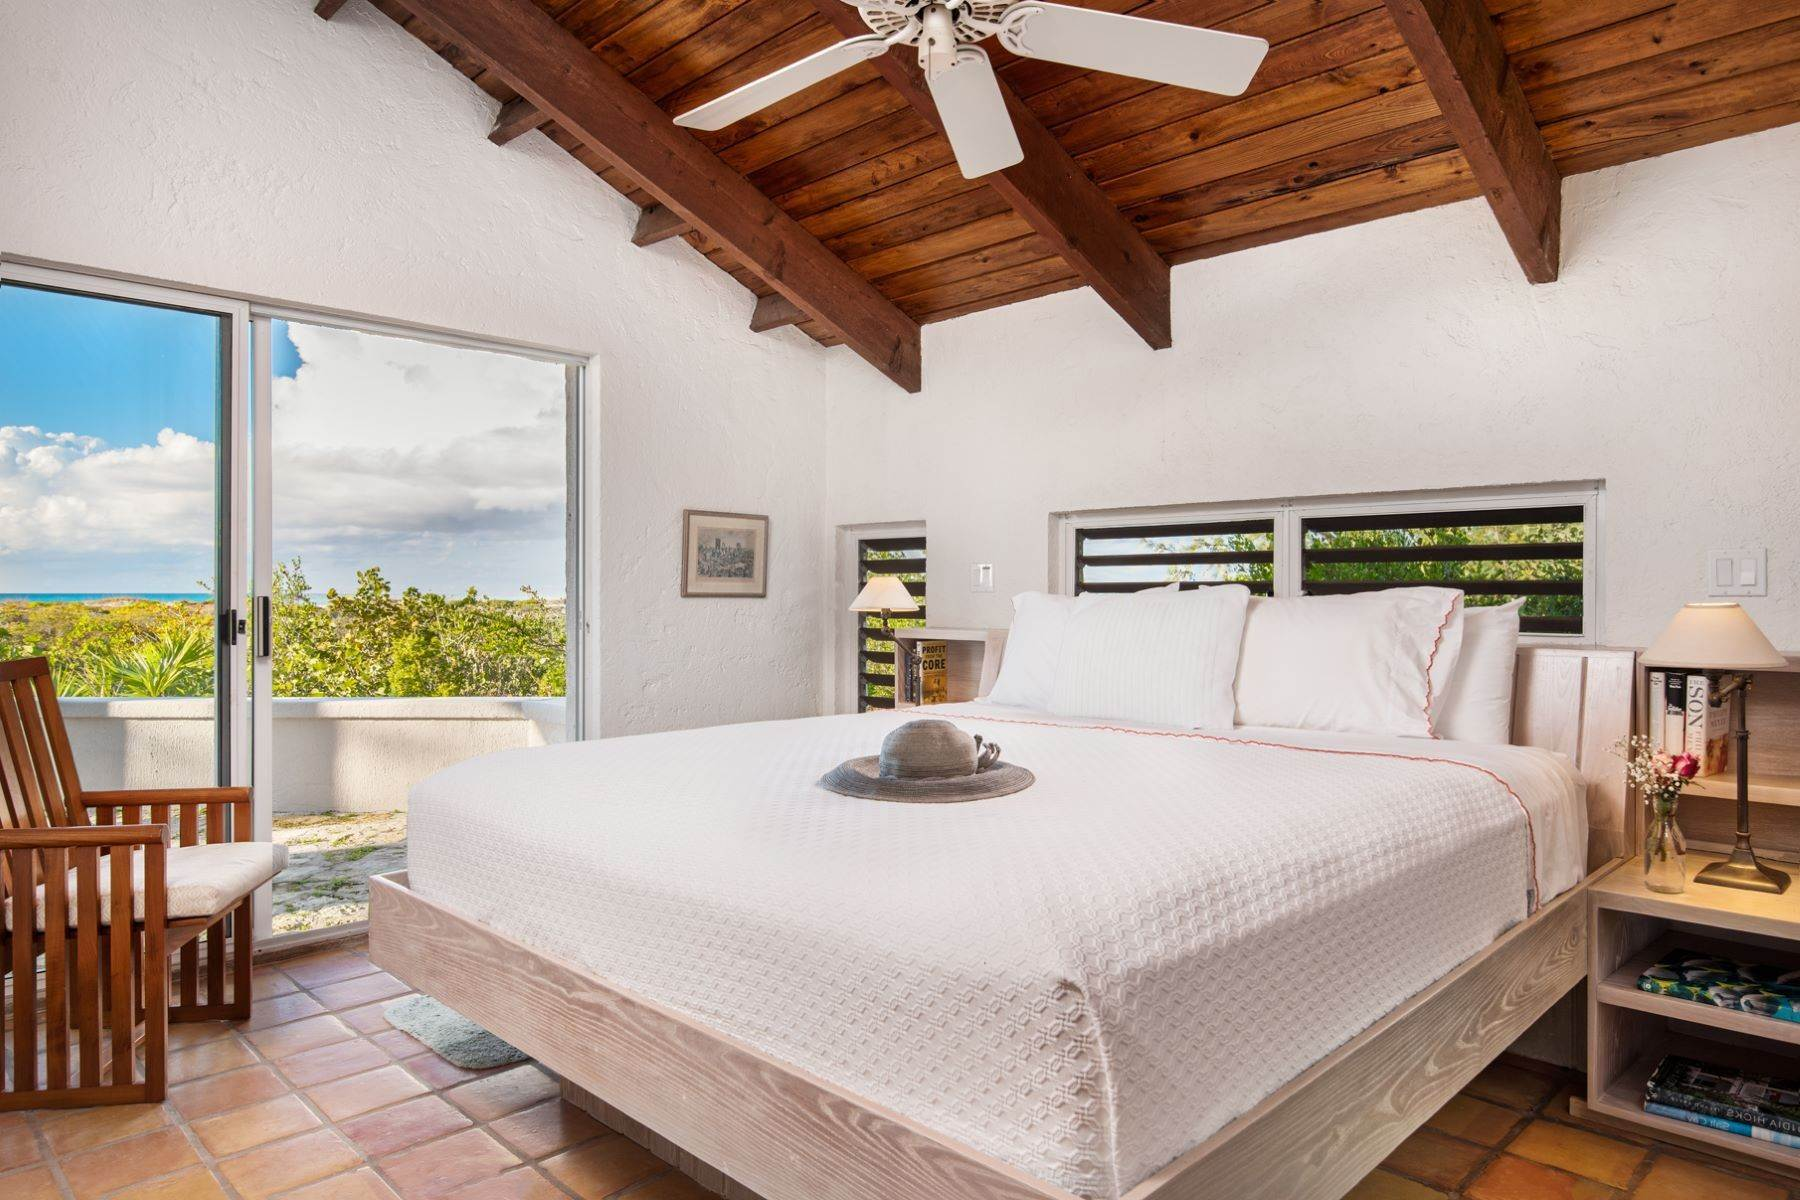 15. Single Family Homes for Sale at Casuarinas Cottage Pine Cay Pine Cay, Pine Cay TCI BWI Turks And Caicos Islands